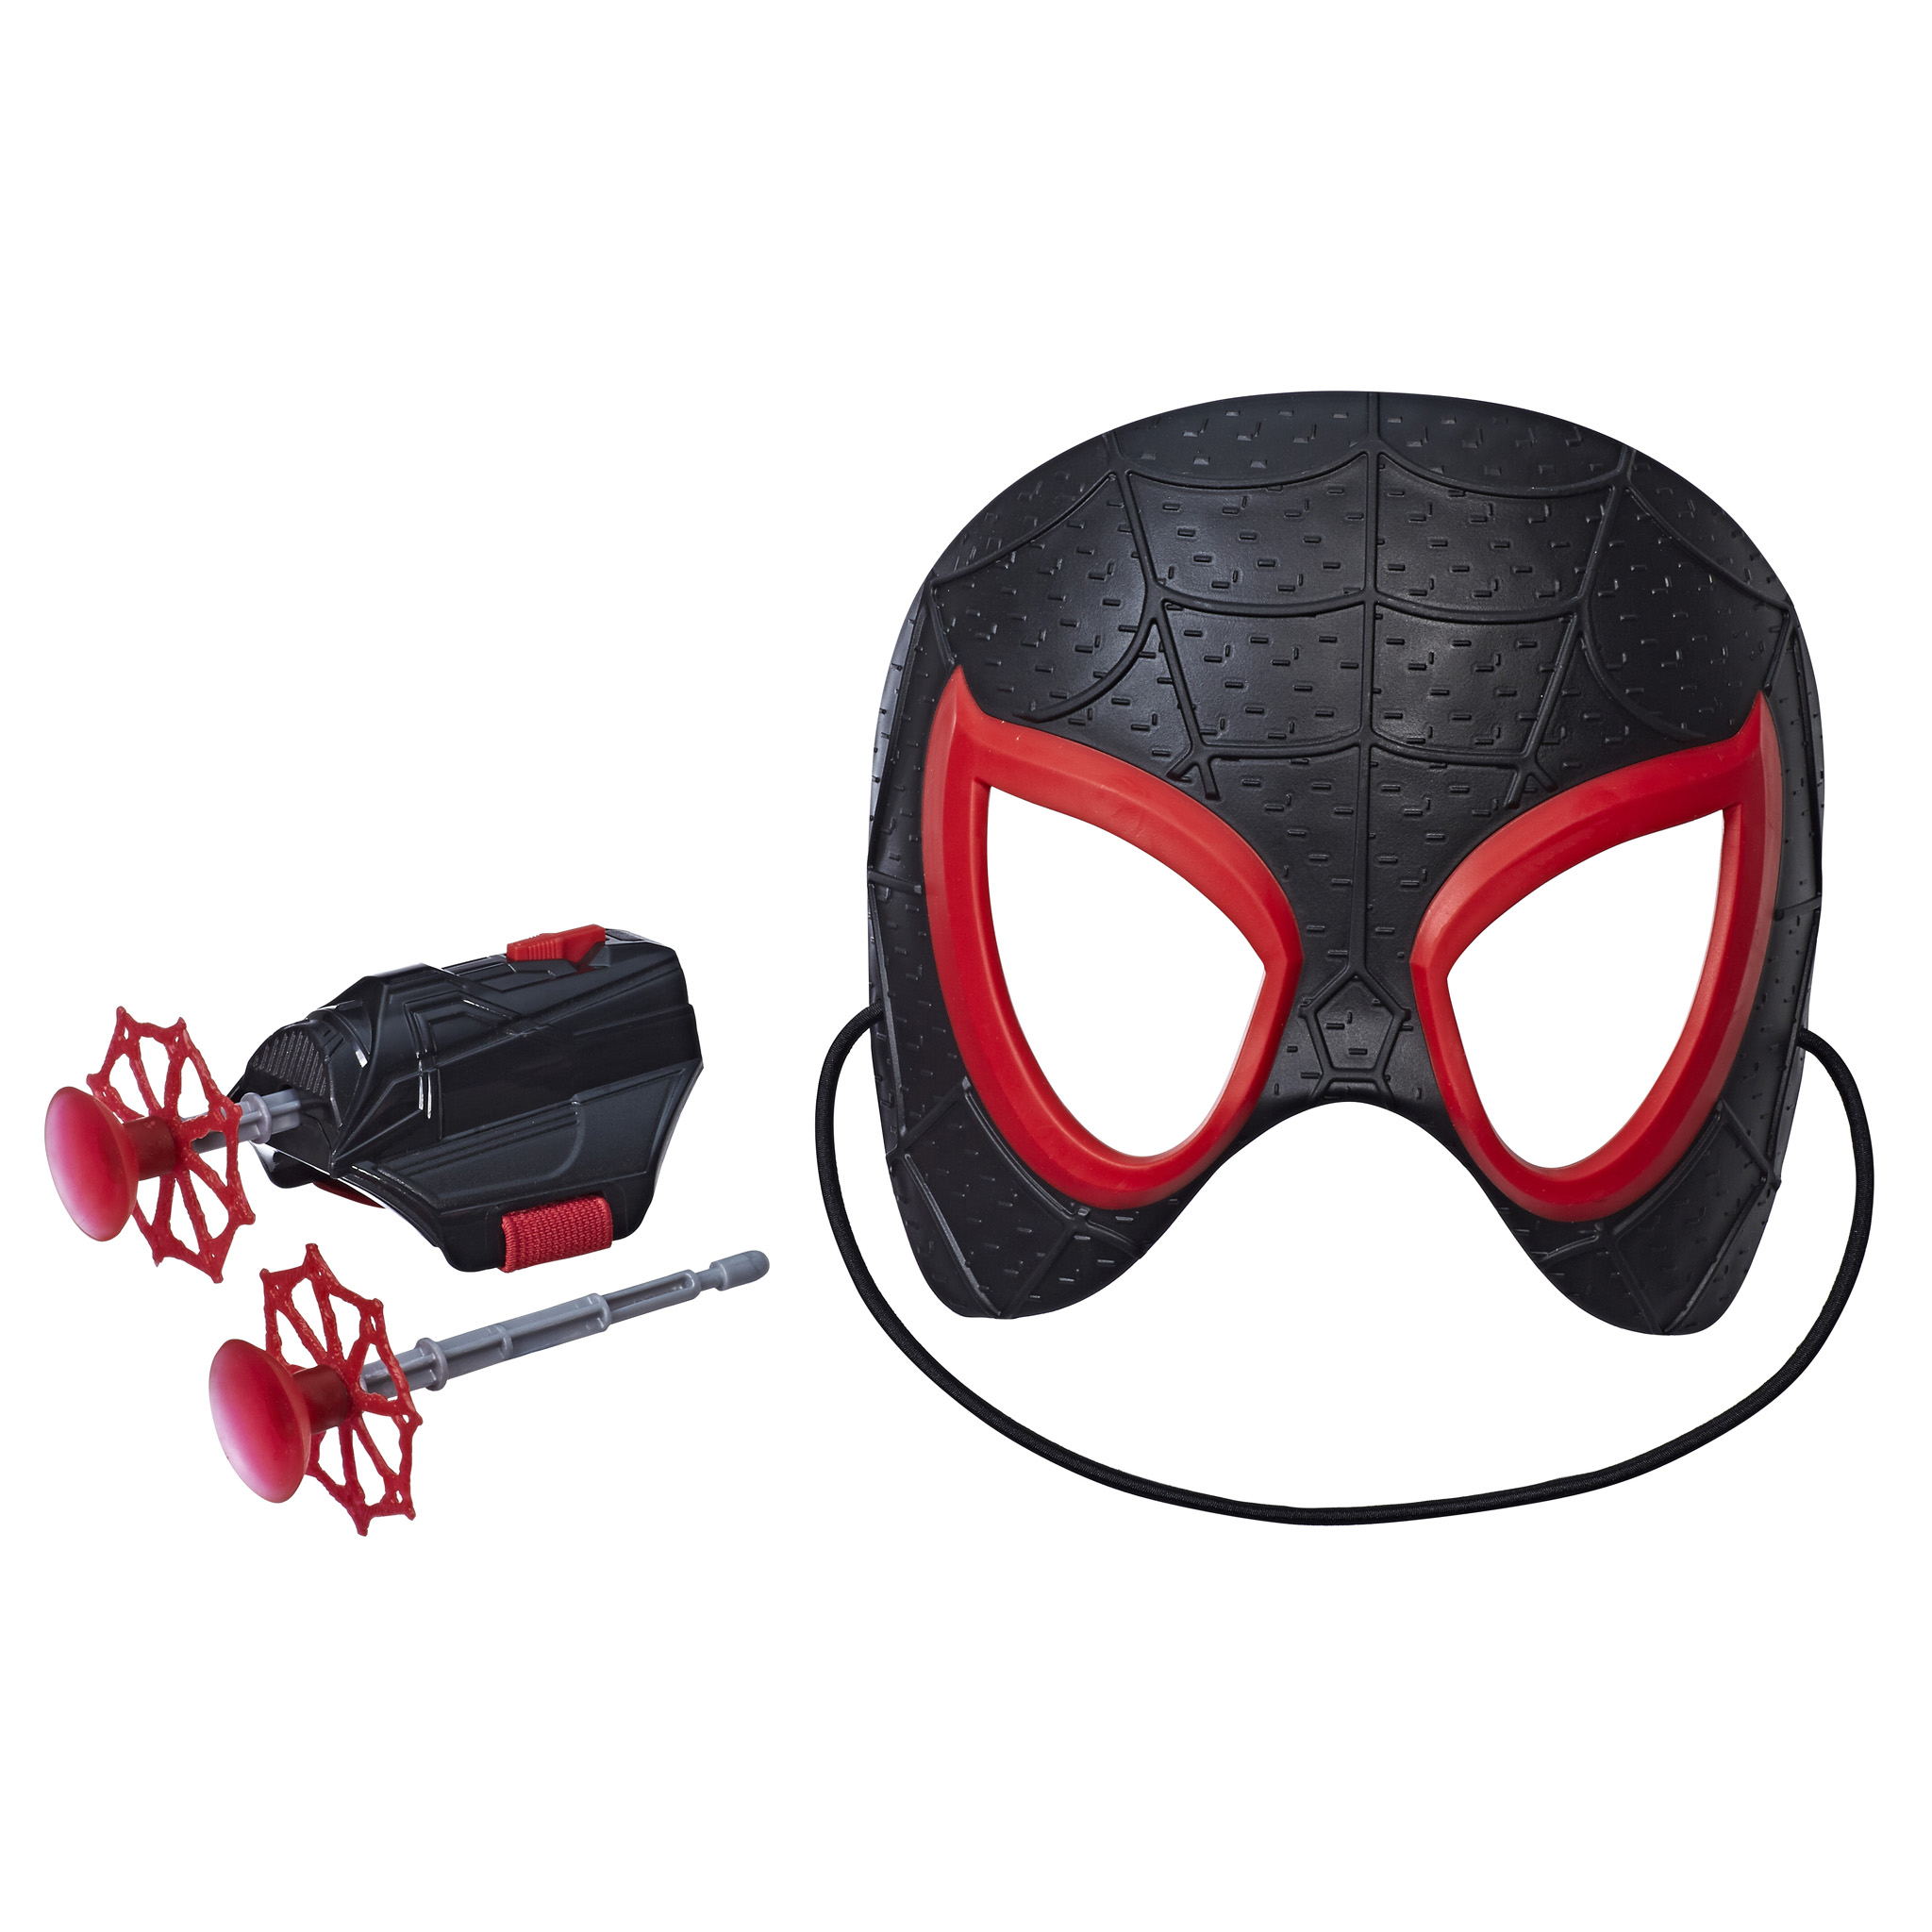 Since Miles is starring in Into the SpiderVerse hes getting a few bigger roleplaying toys from Hasbro as well The Into the SpiderVerse Hero FX Mask